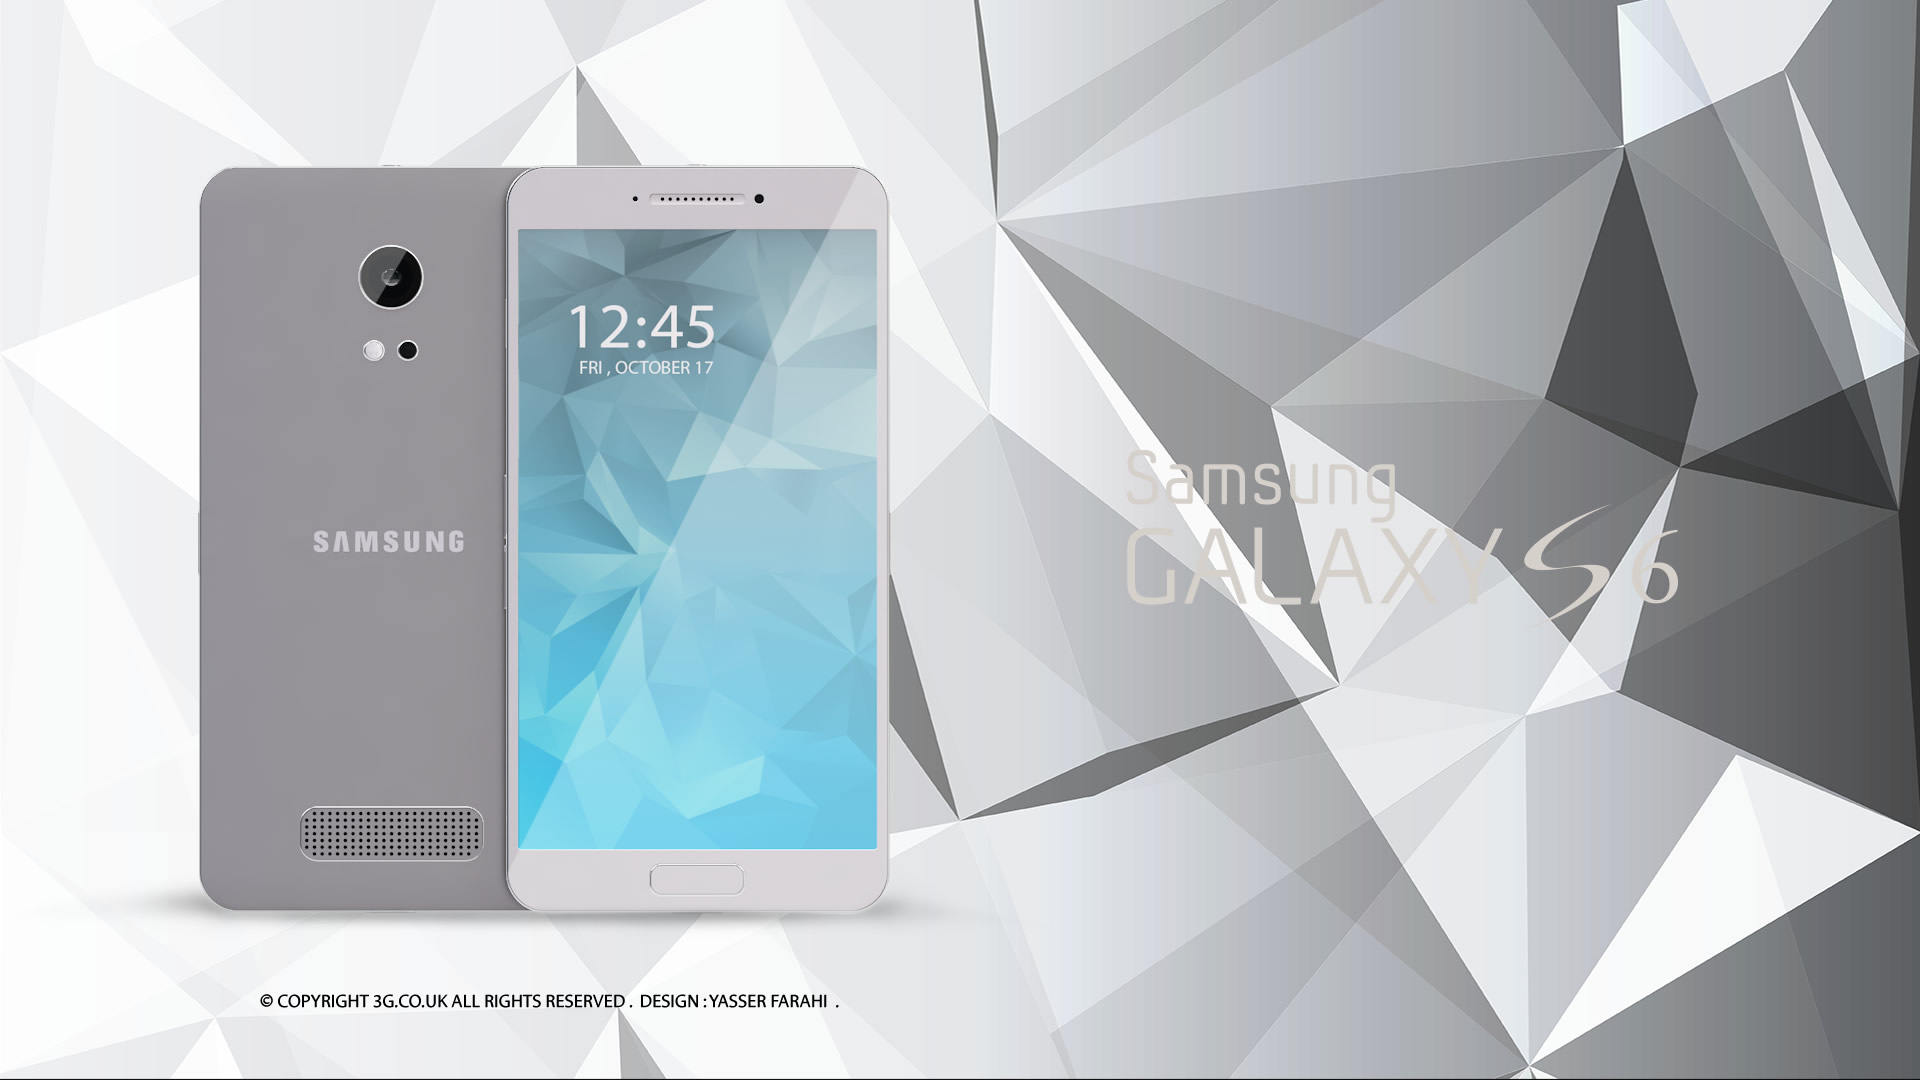 Samsung Galaxy S6 Trailer